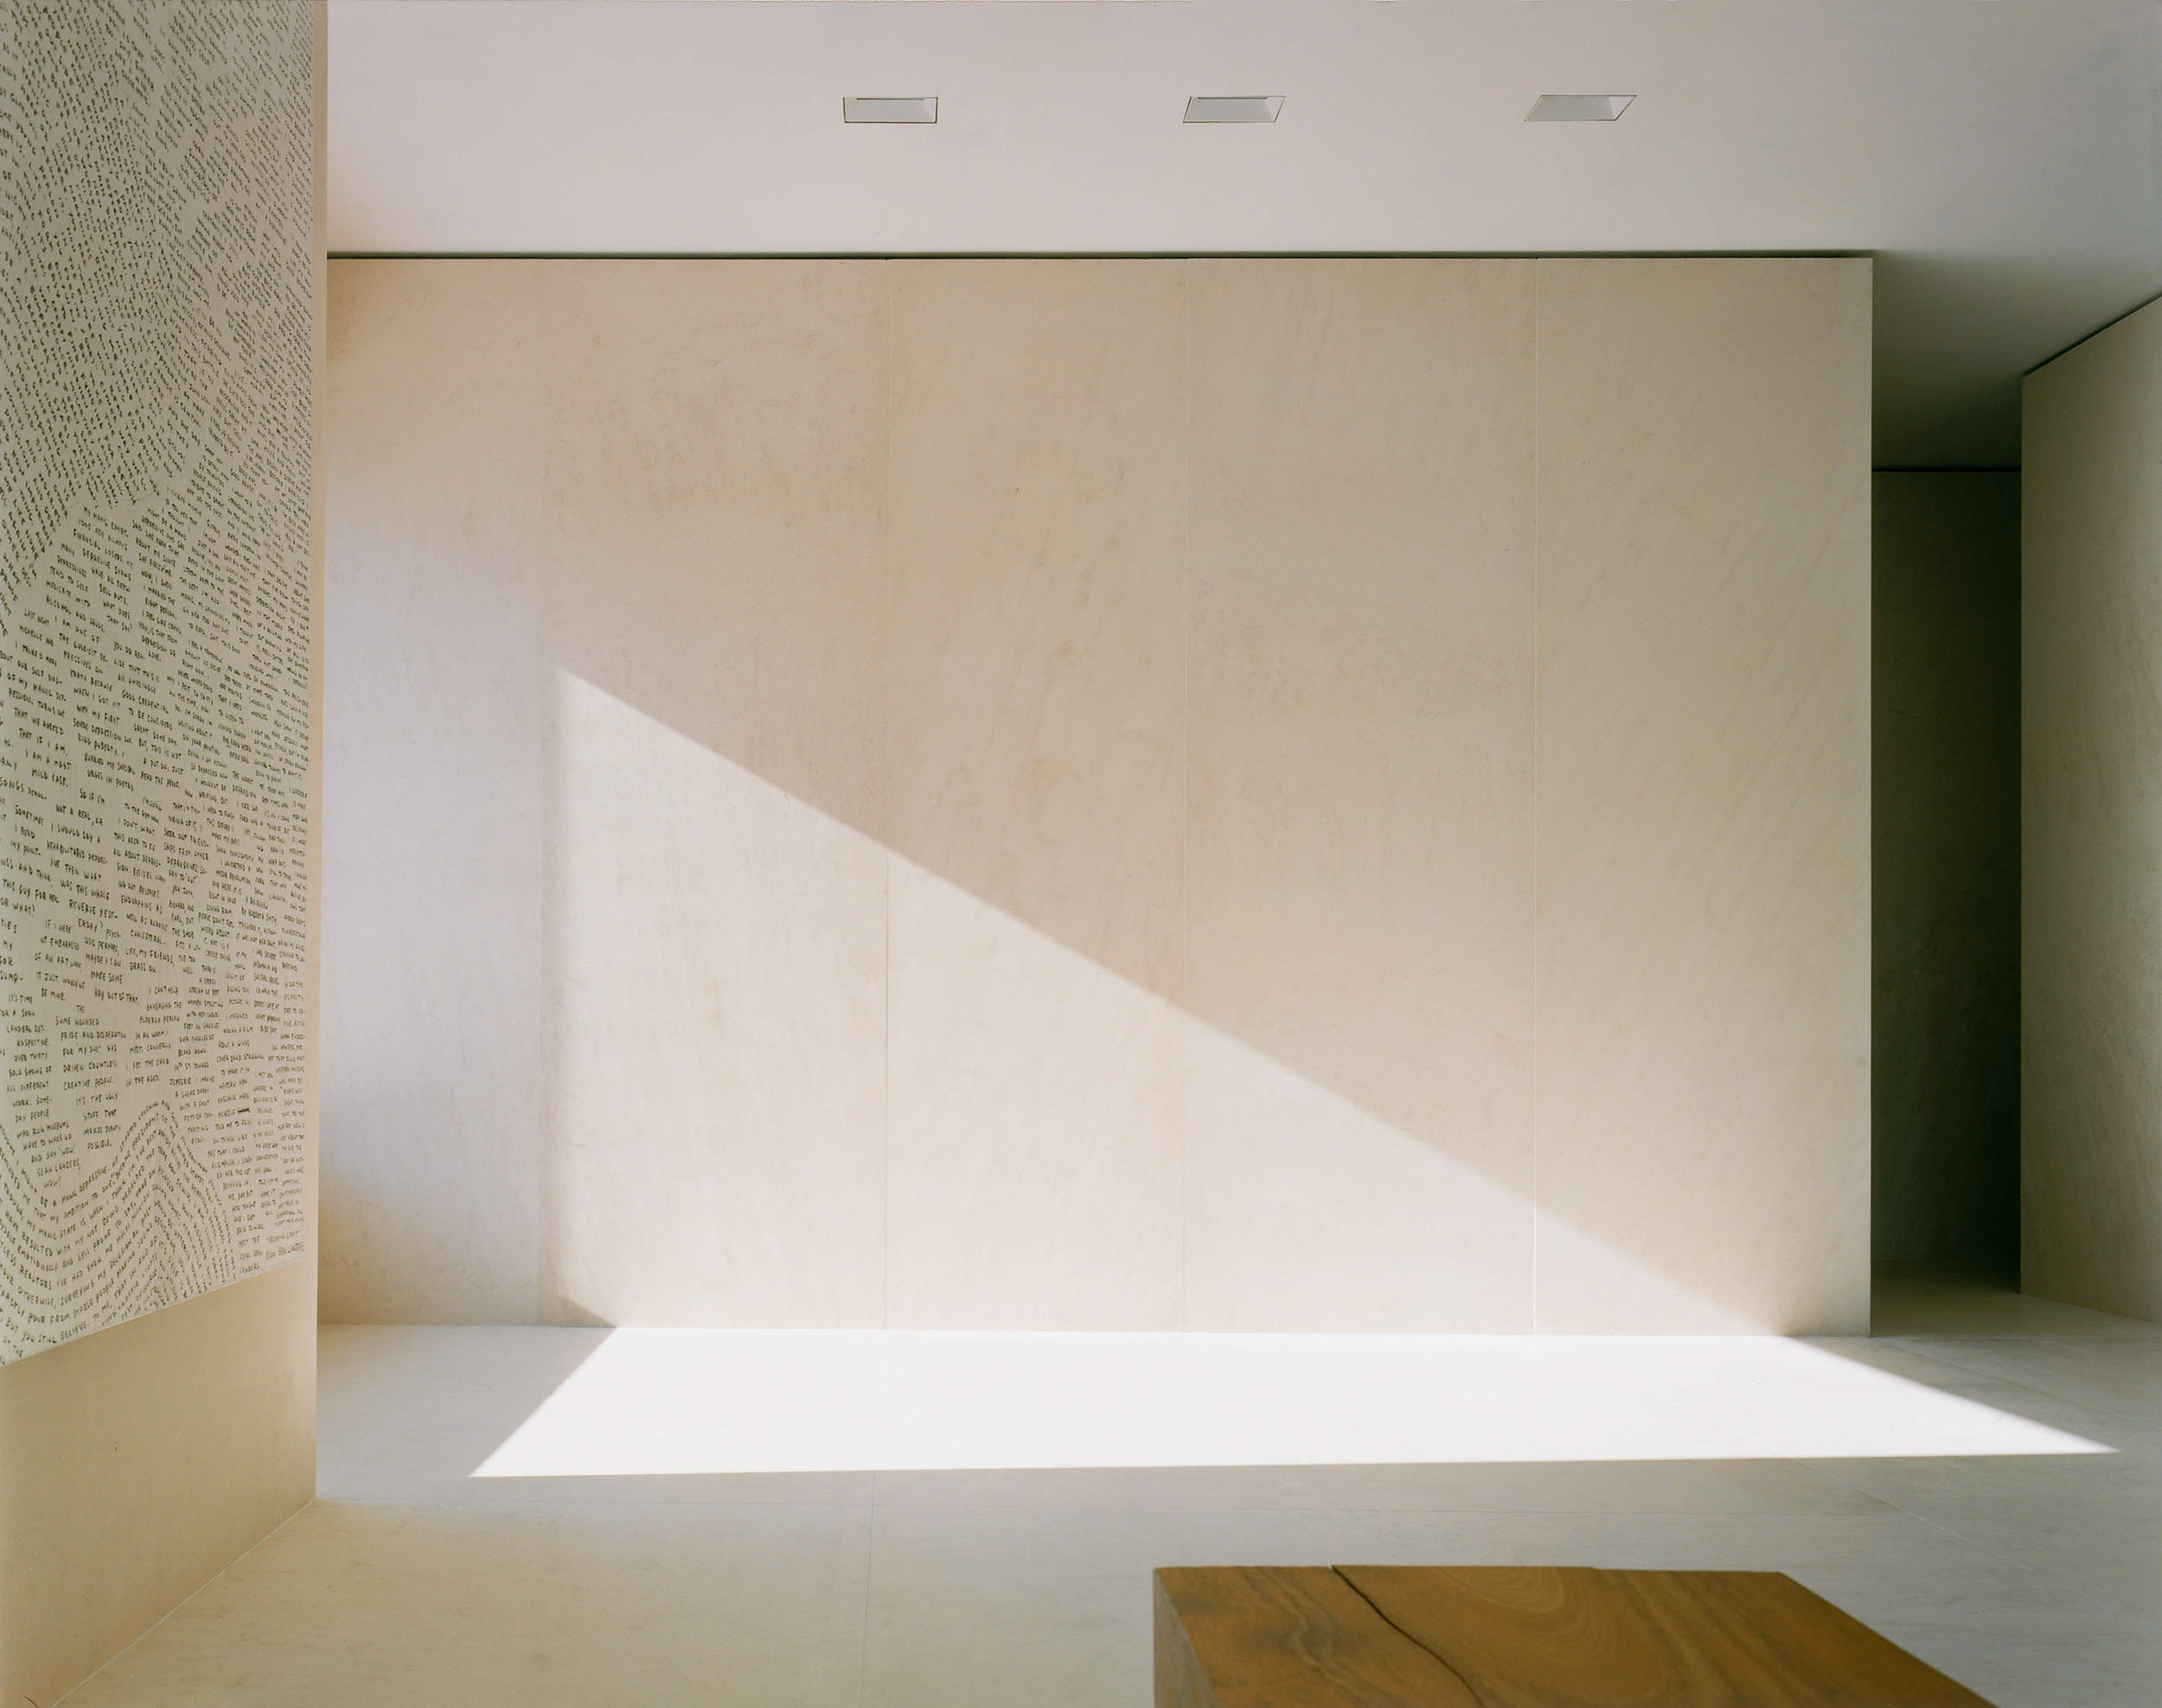 Gallery floors and walls in slabs of limestone